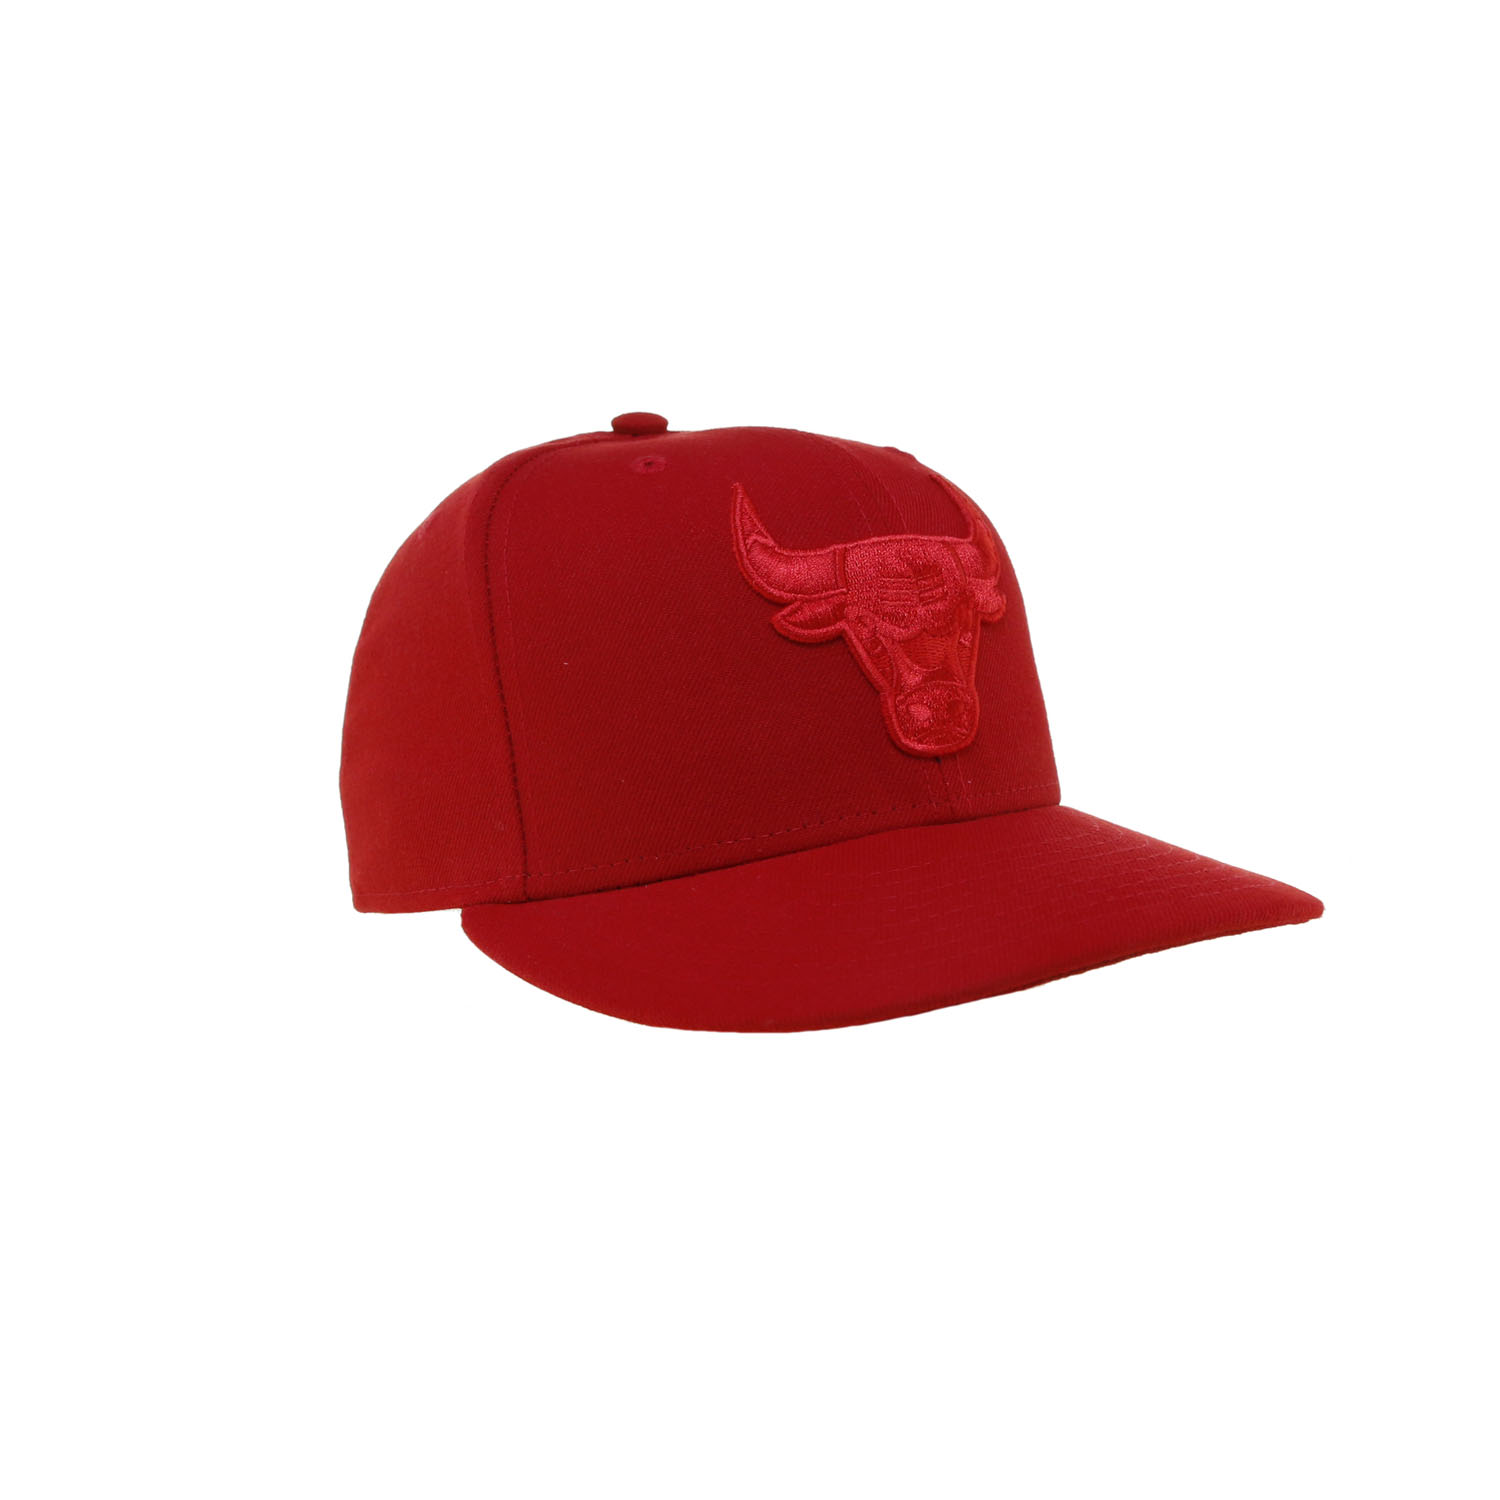 New Era Tonal 59Fifty NBA Chicago Bulls Cap ( 11168946 ) αξεσουάρ   καπέλα